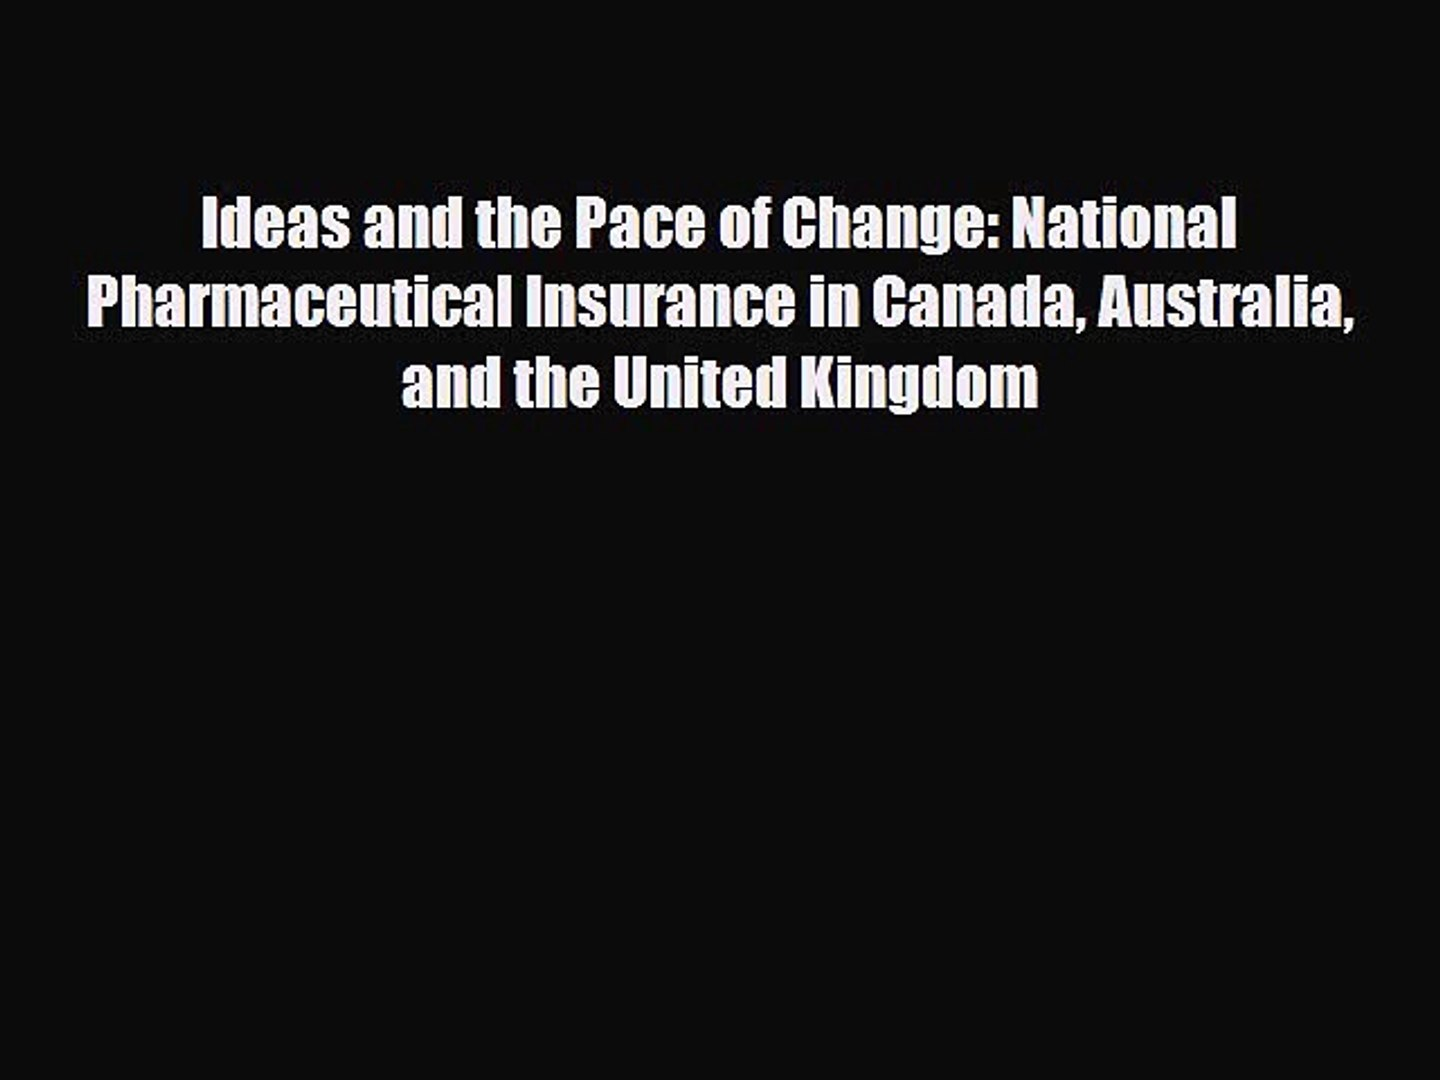 Ideas and the Pace of Change: National Pharmaceutical Insurance in Canada Australia and the